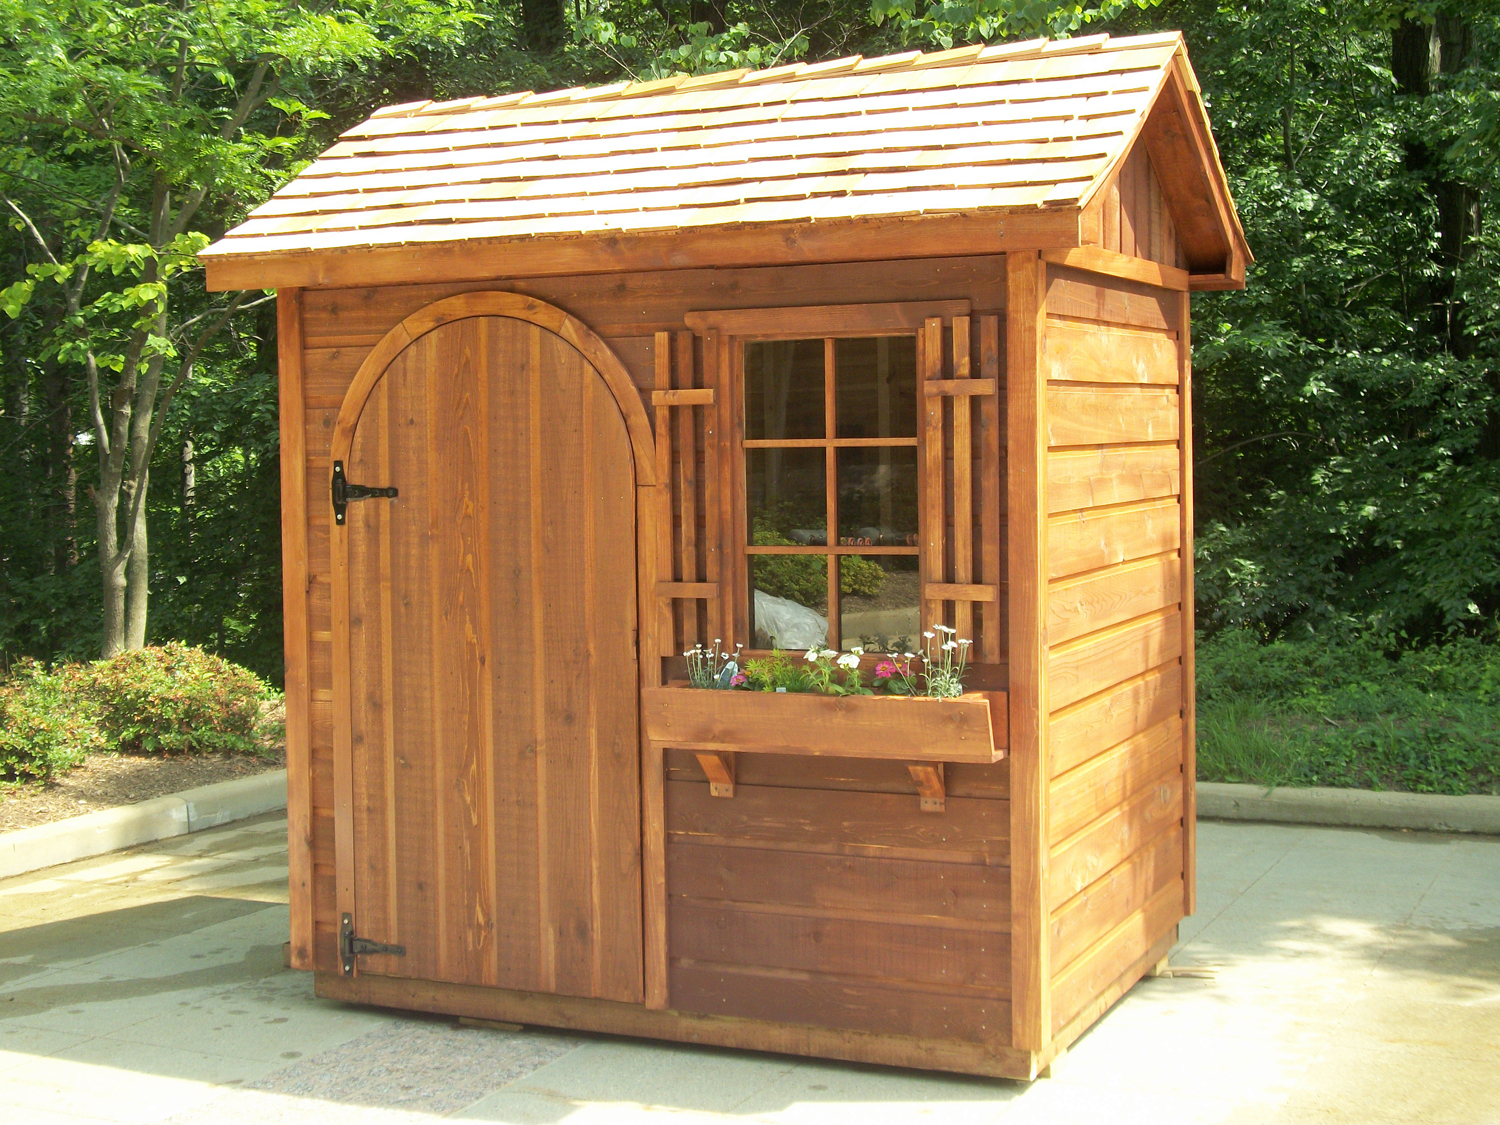 Garden shed design and plans shed blueprints for Garden shed pictures